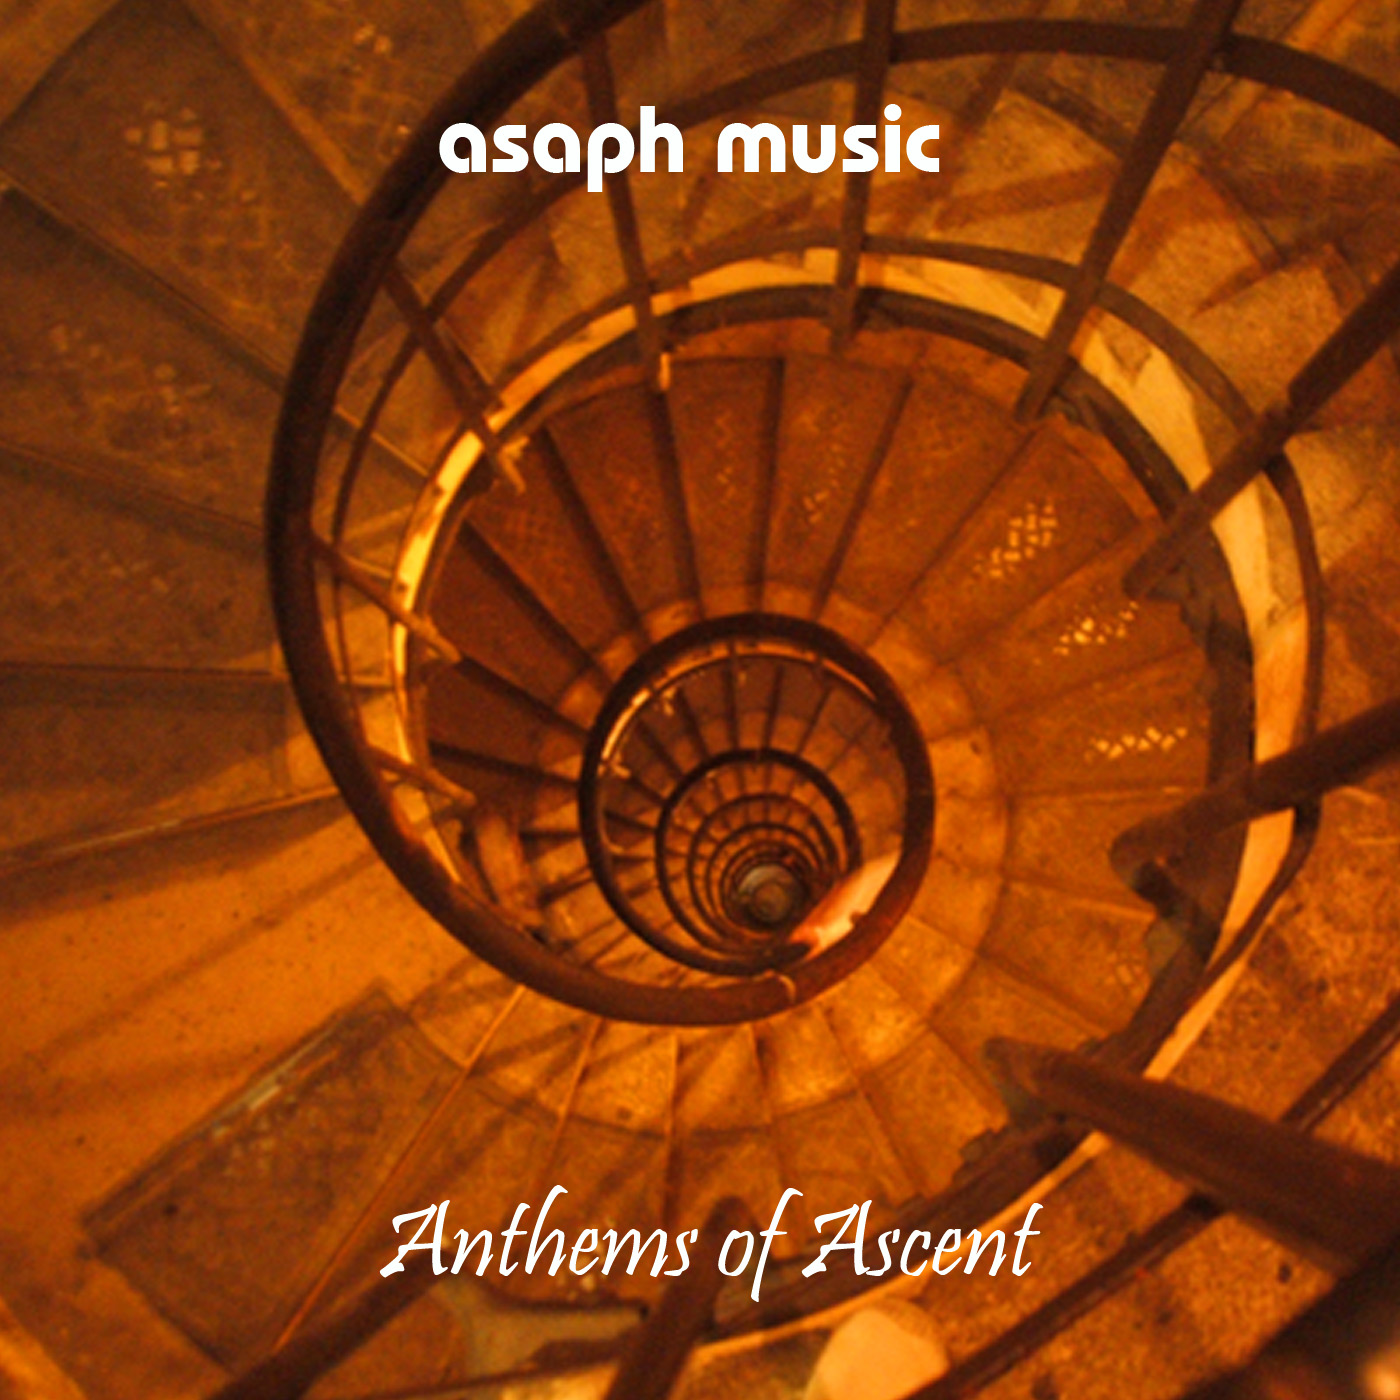 Asaph Music - Anthems of Ascent